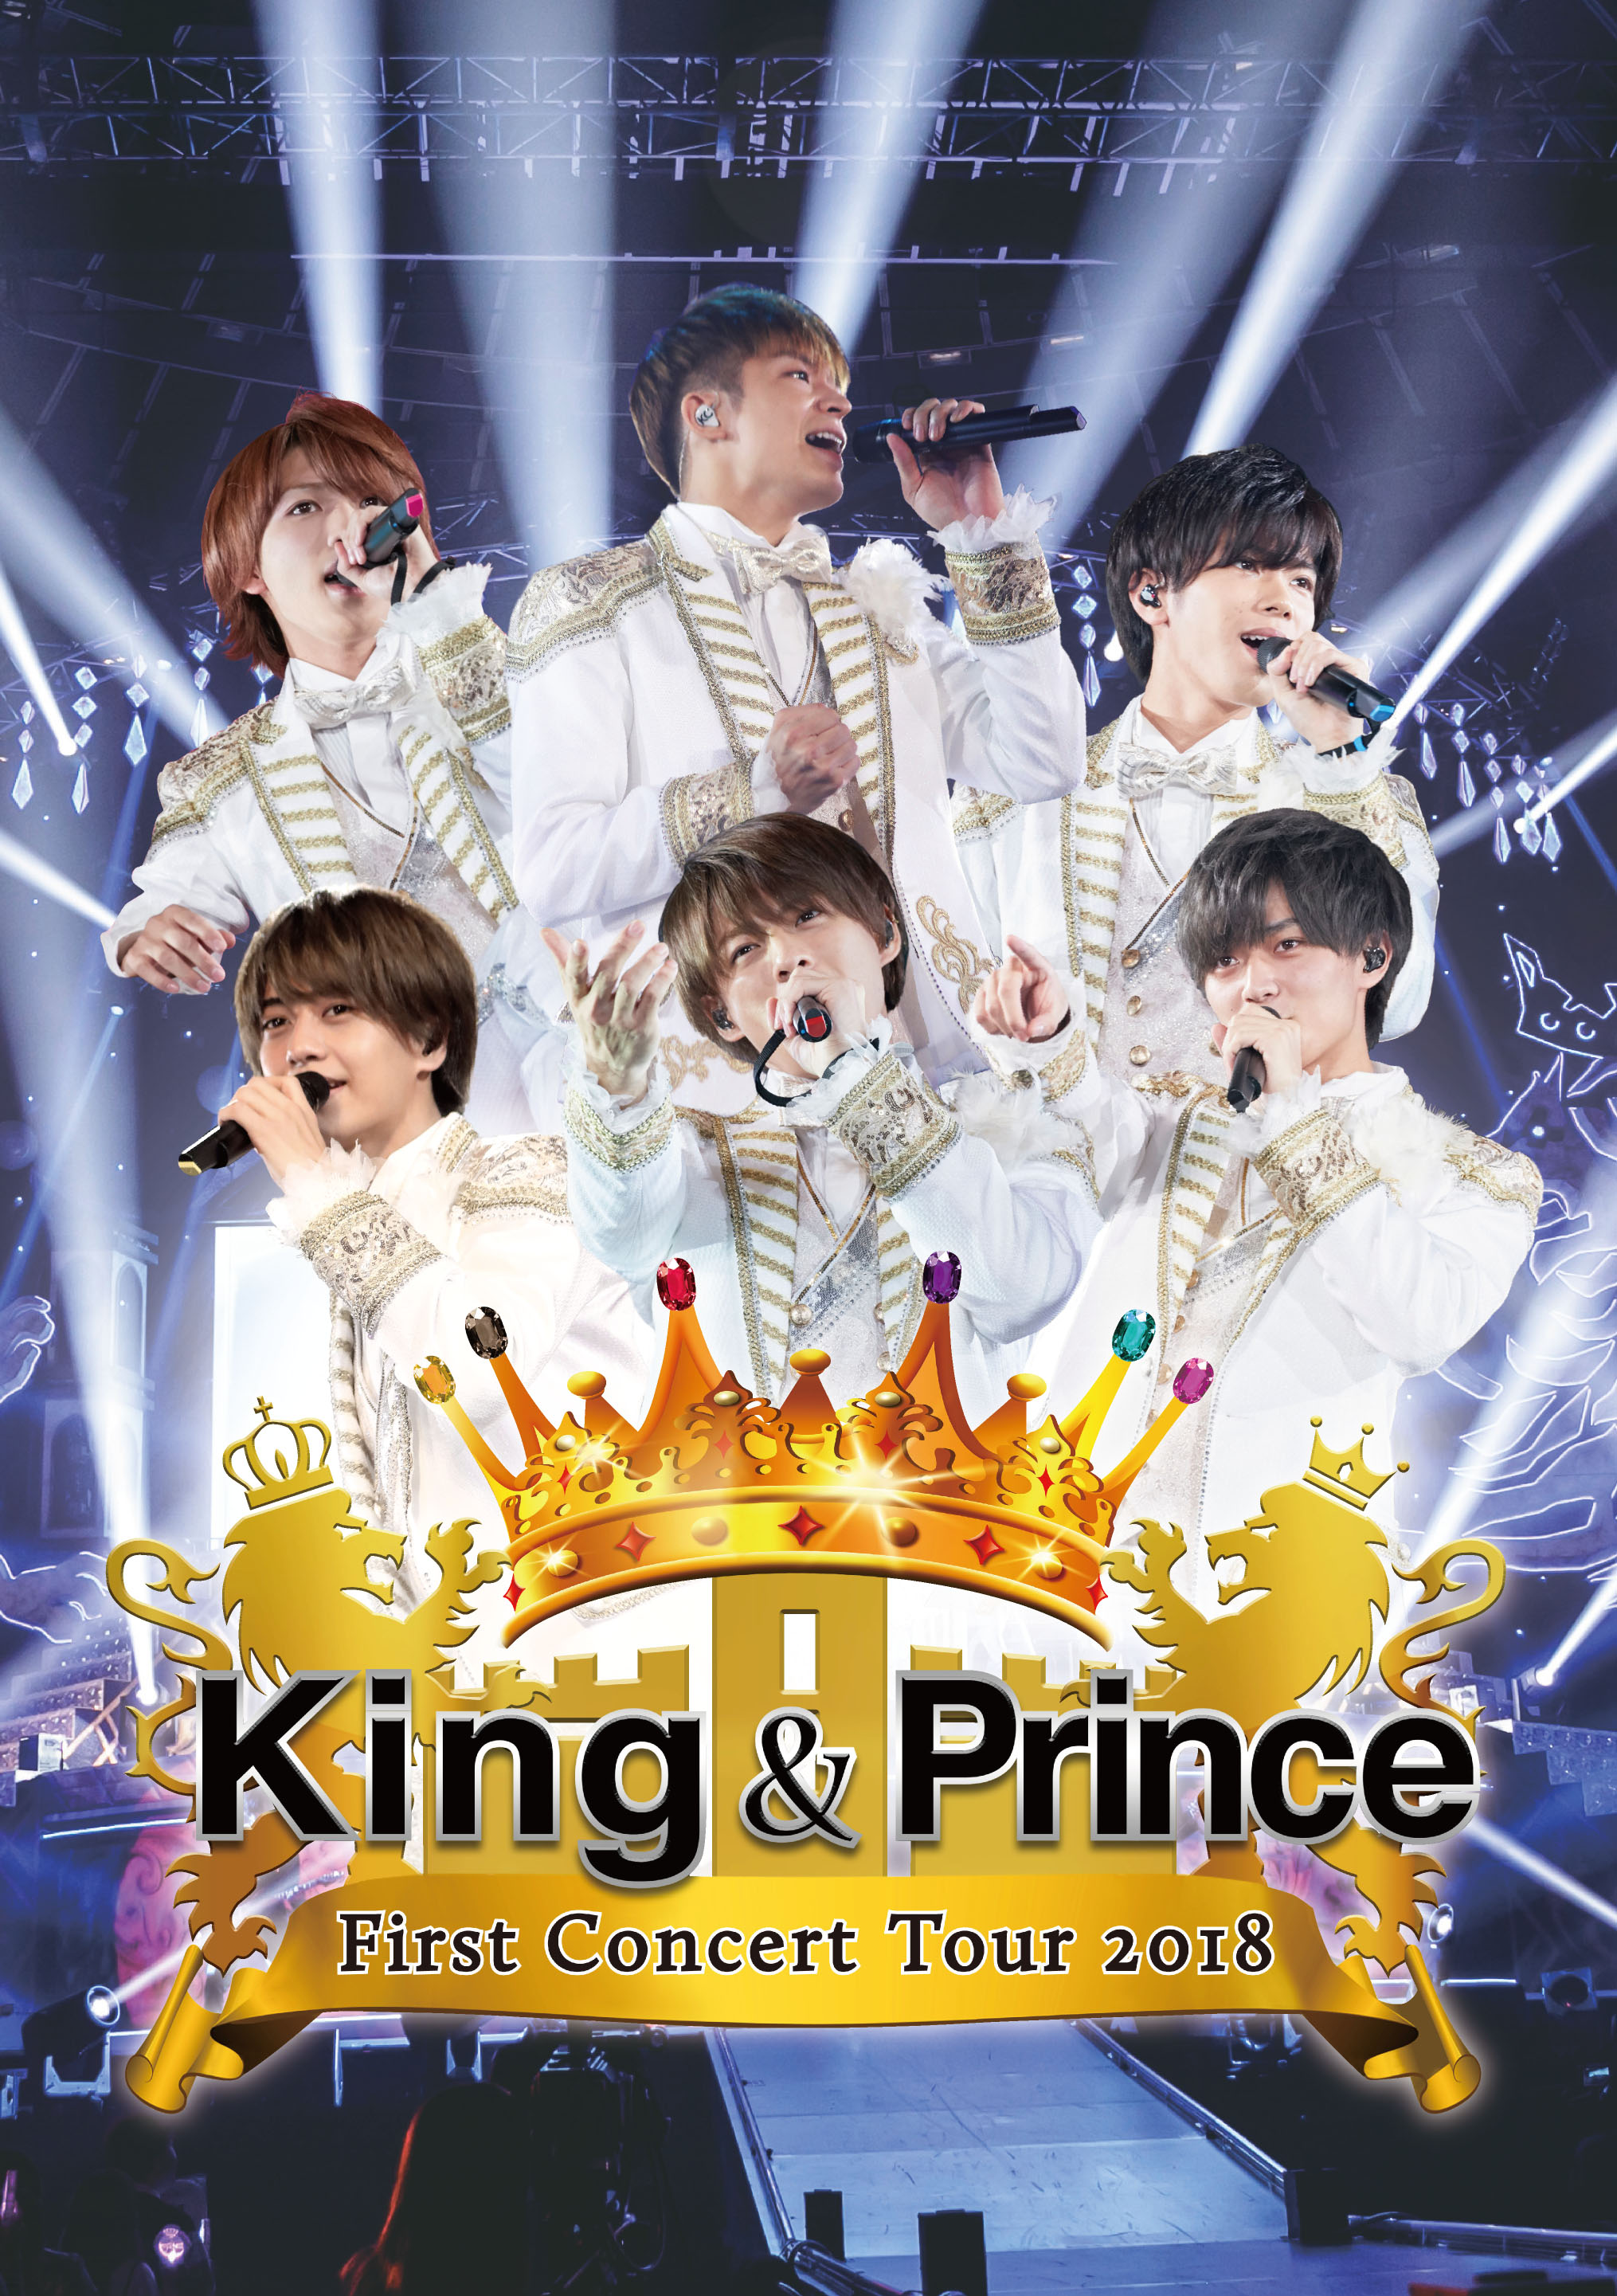 King & Prince-King & Prince First Concert Tour 2018 通常盤 2DVD